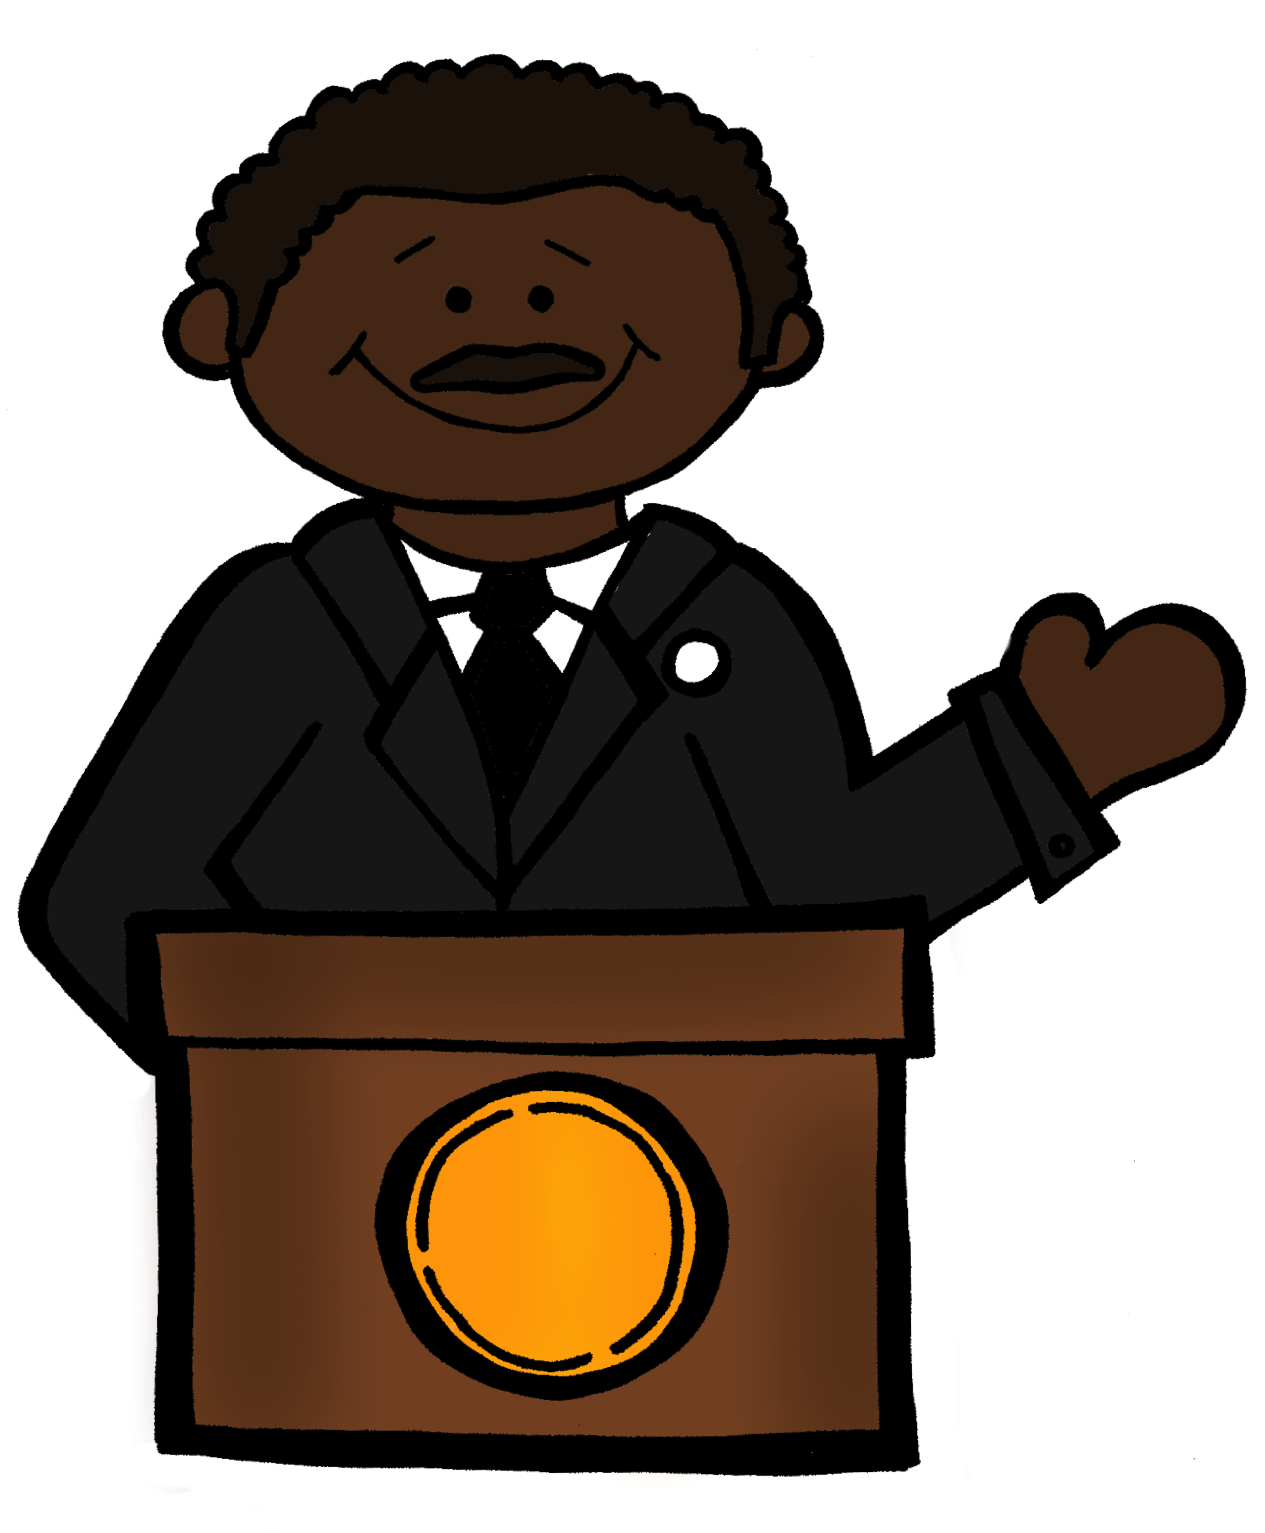 Mlk clipart cartoon. Free cliparts download clip